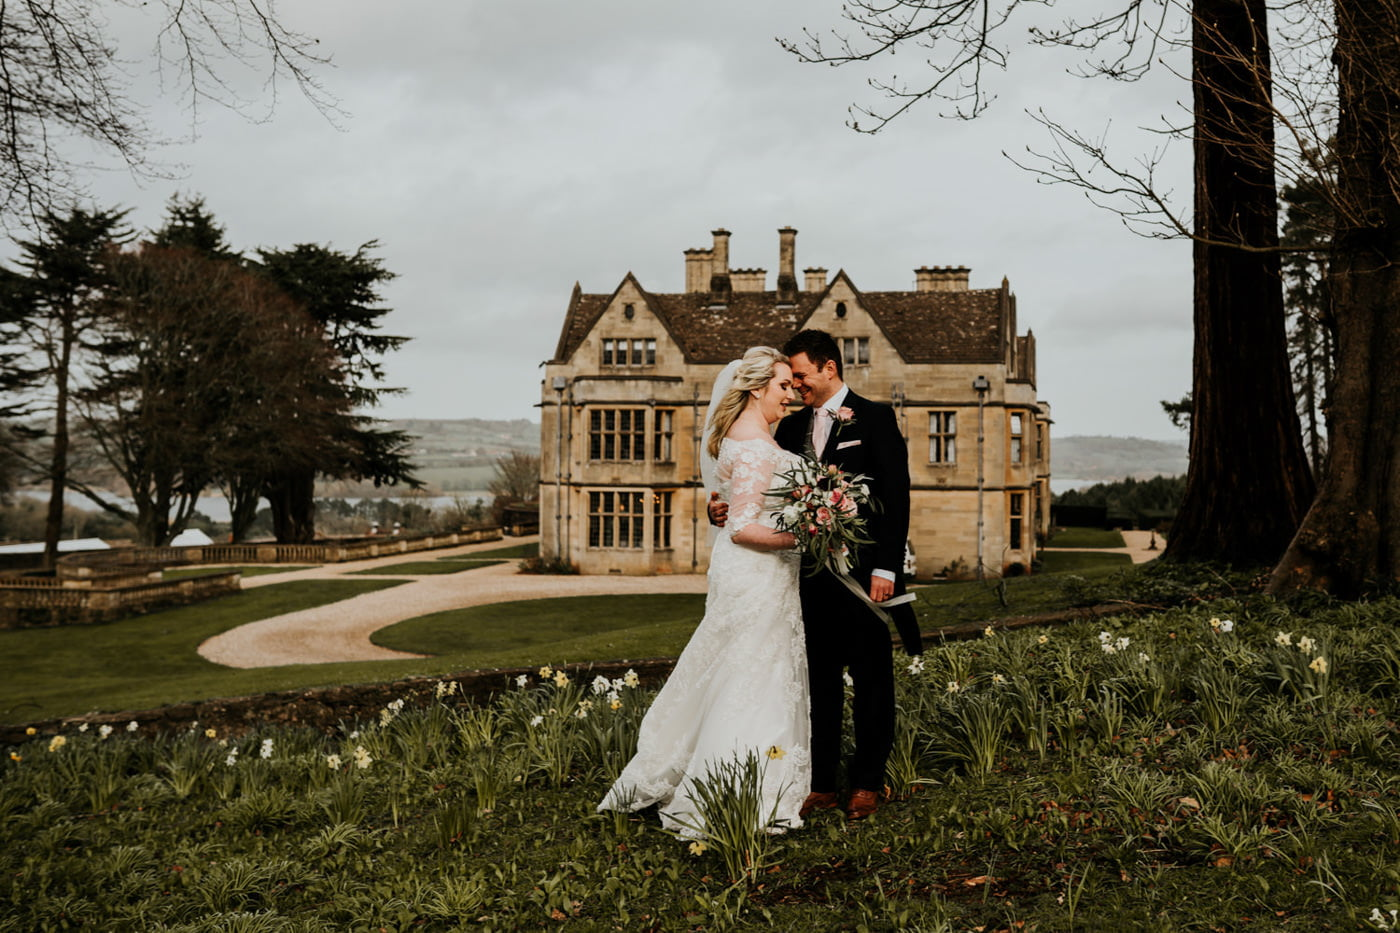 Amy and Rich, Coombe Lodge, Bristol 4